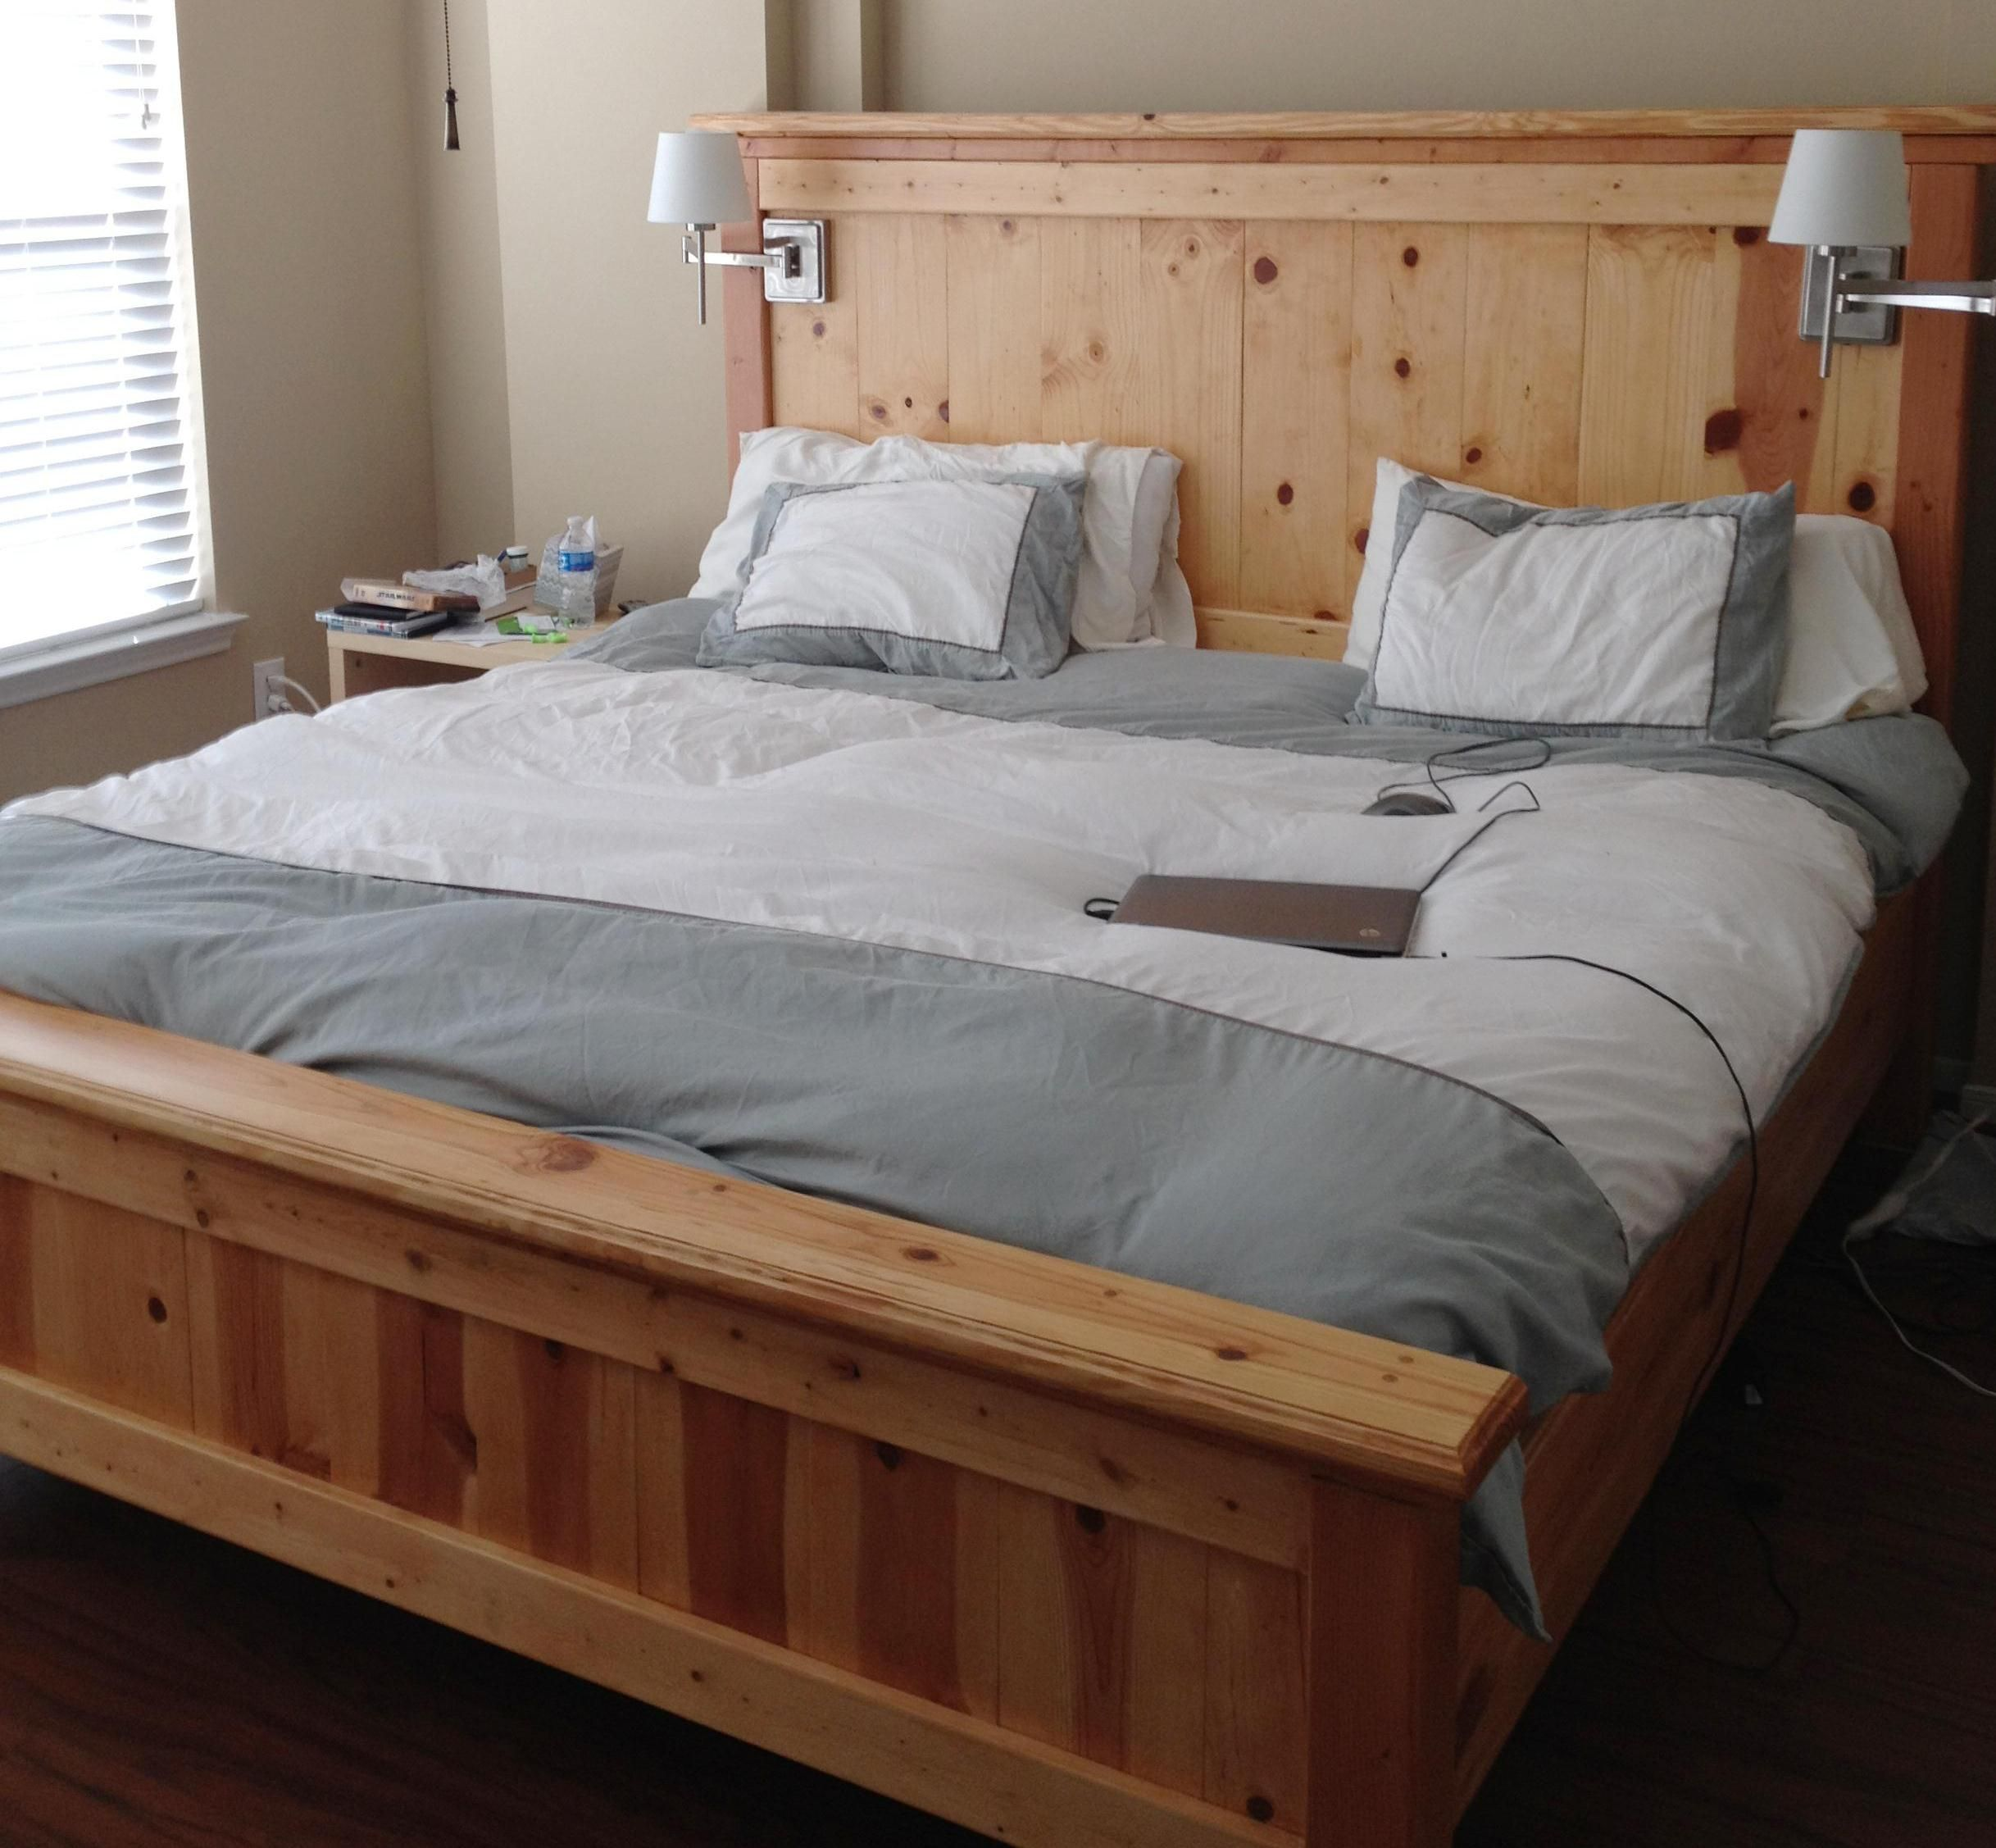 Bed Frame Blueprints Free Farmhouse King Do It Yourself Home Projects From Ana White